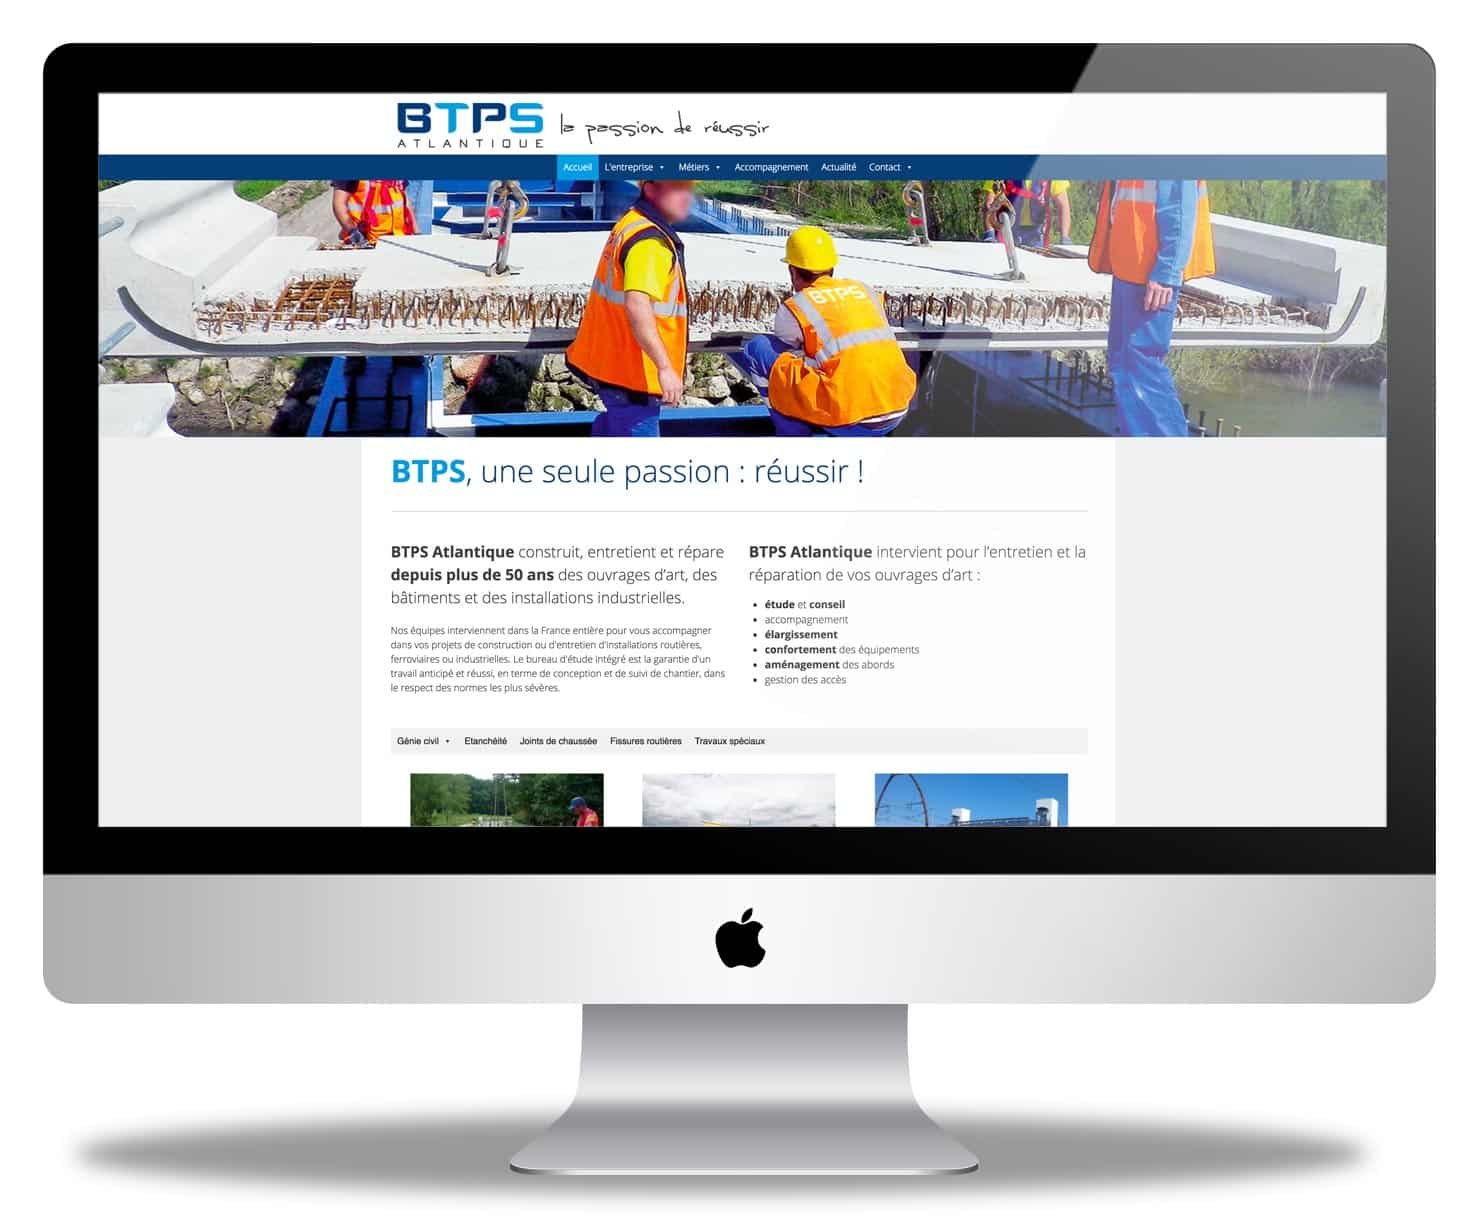 BTPS ATLANTIQUE passe au digital